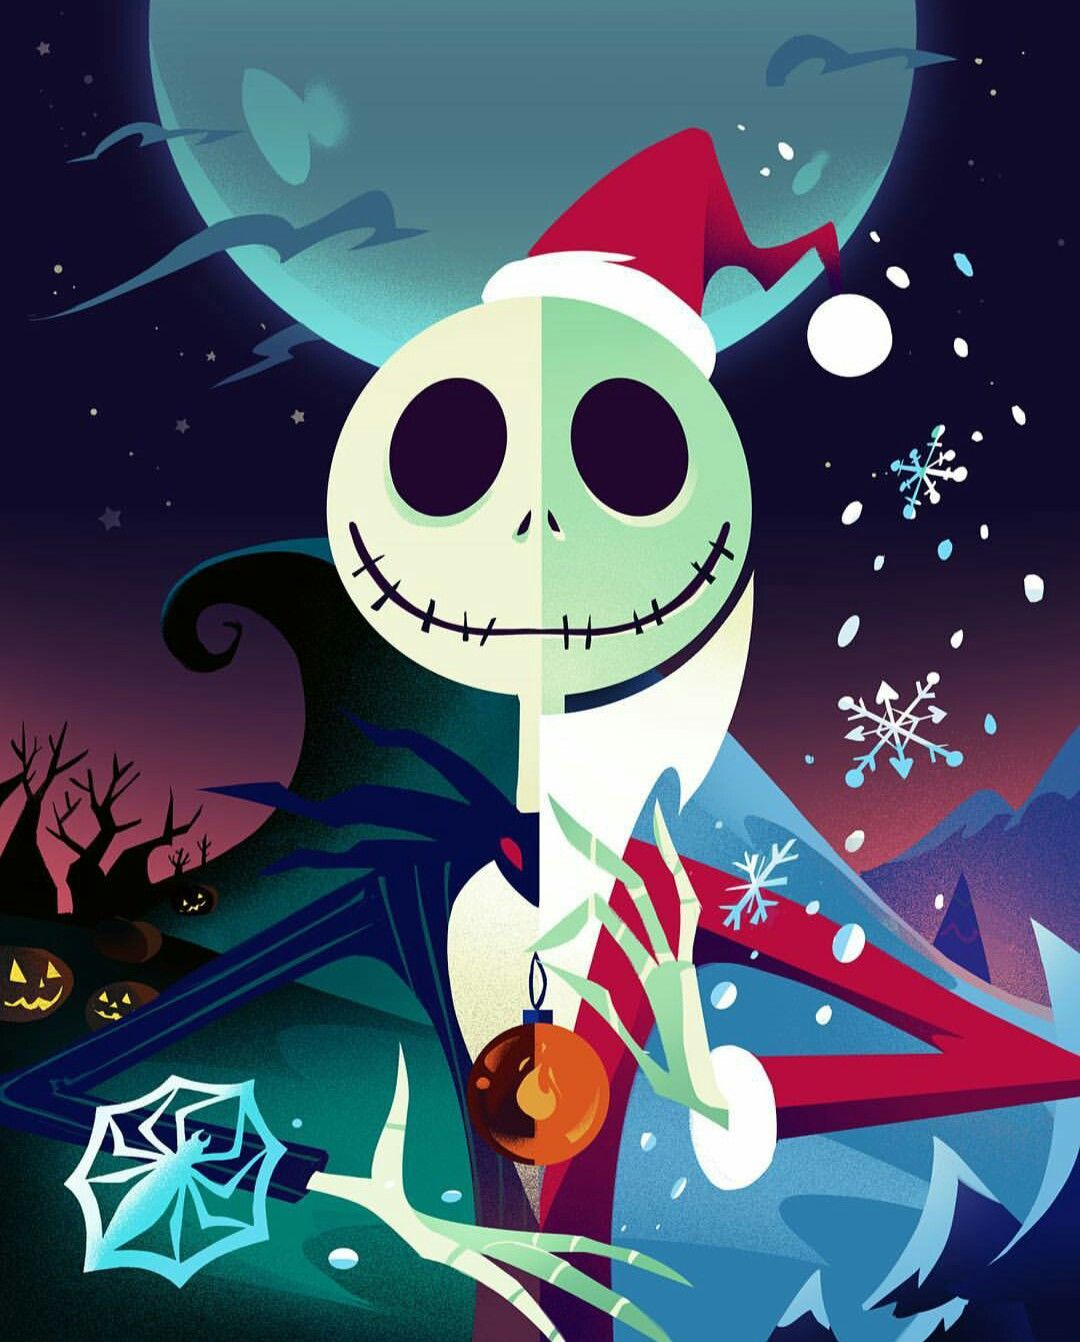 Pin De Aurora Che En The Nightmare Before Christmas Fondos De Halloween Fondo De Pantalla Halloween Pantallas De Halloween